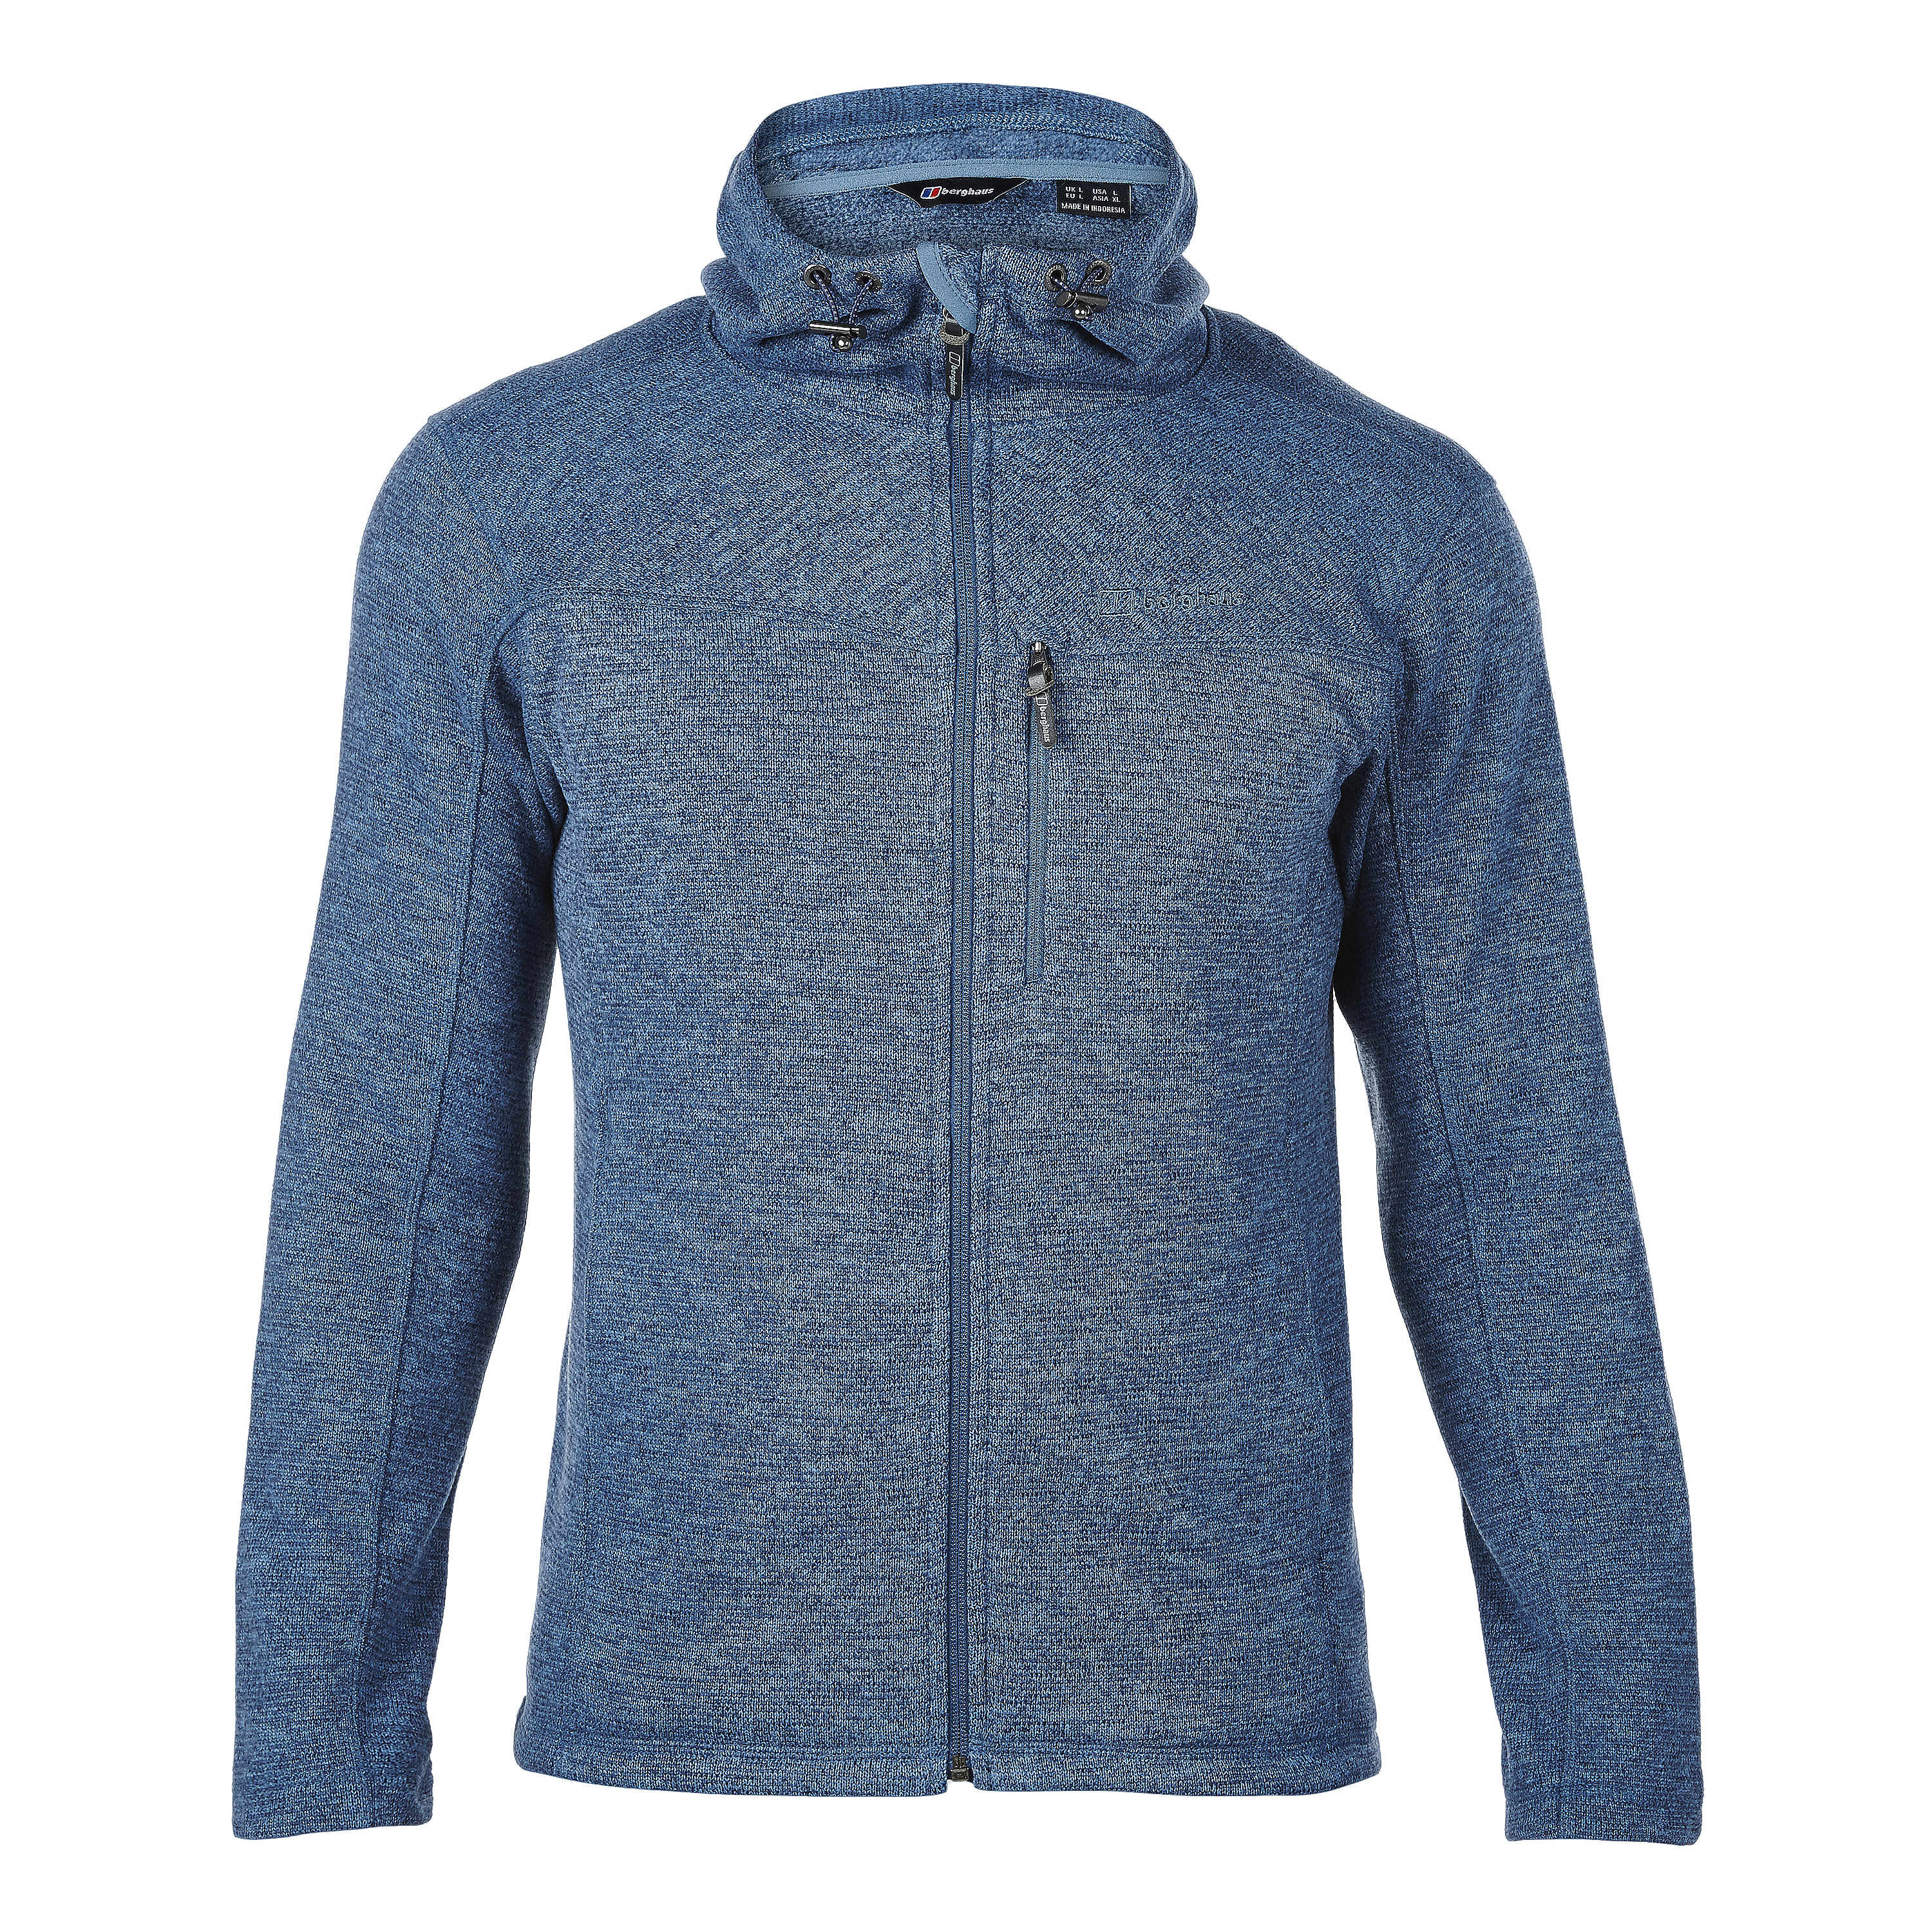 Berghaus Fleece Jacket Greyrock blue